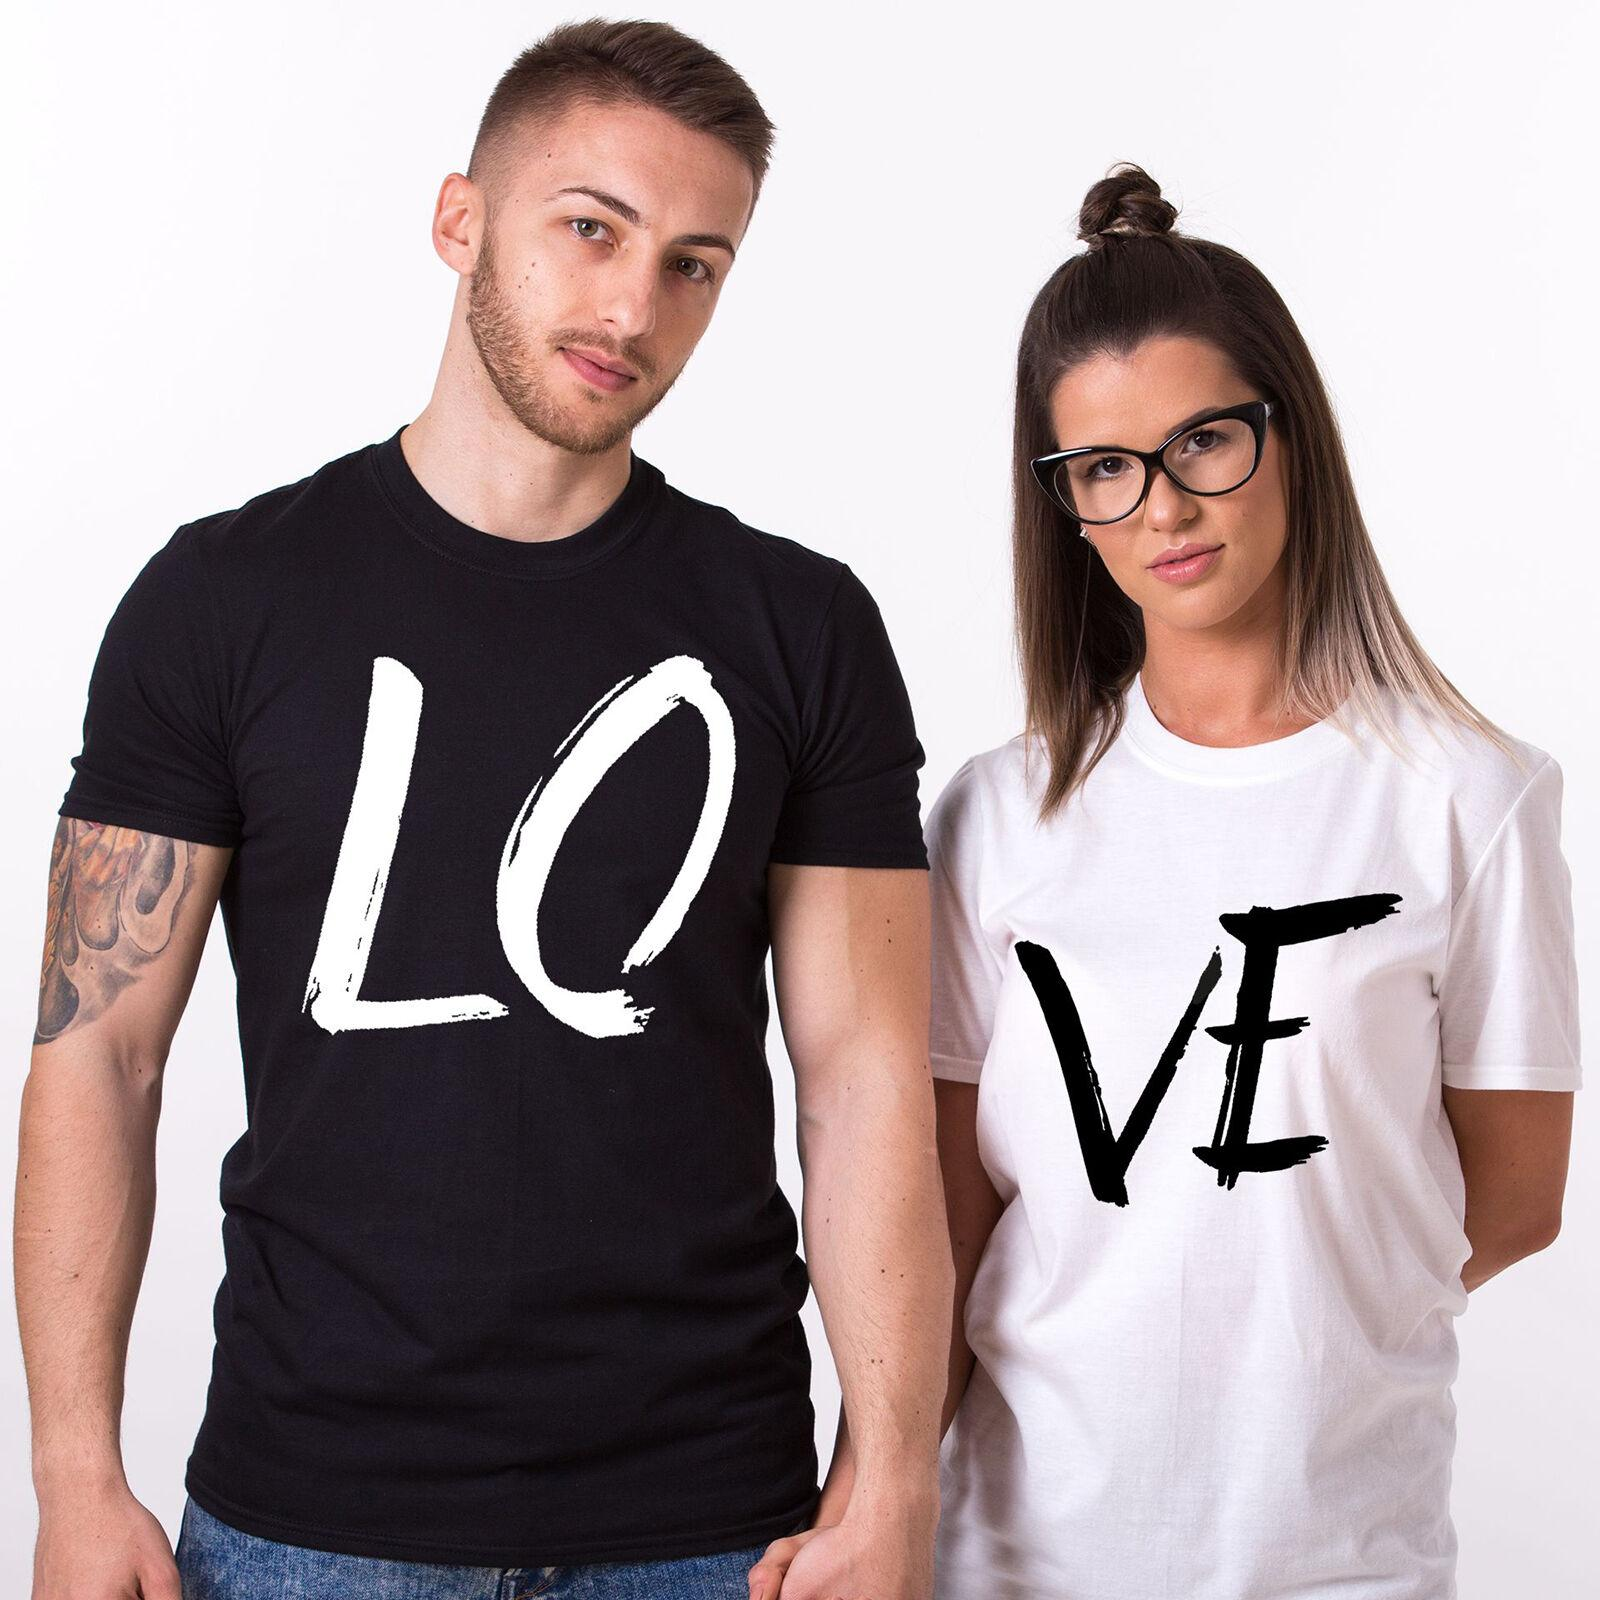 01663c07 Couple T-Shirts LOVE Matching Shirts Summer Tee Top Valentine's Day His and  Hers Men Women Unisex Fashion tshirt Free Shipping